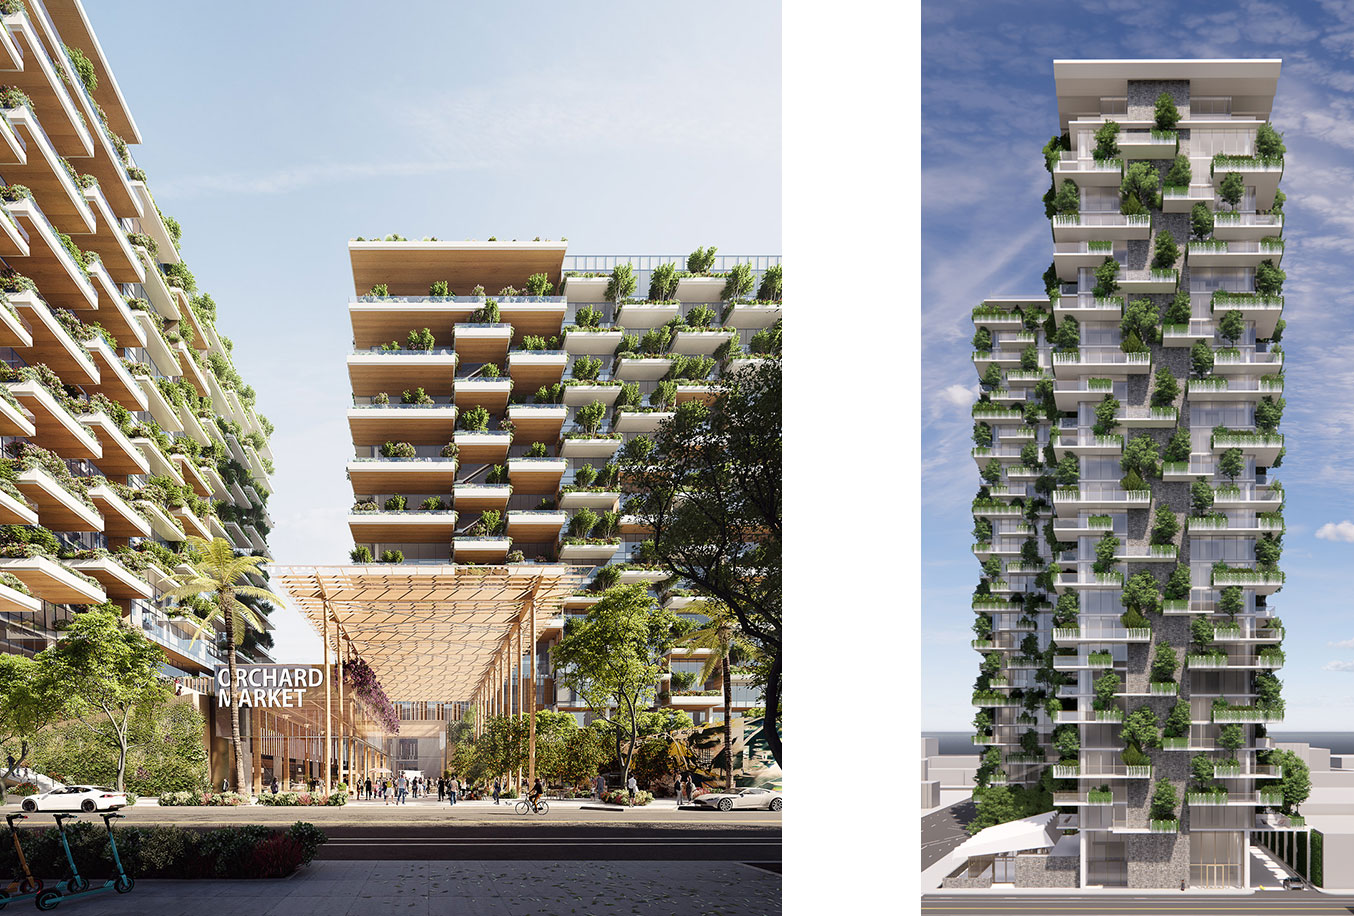 The Orchard Westbank San Jose High-Rise Rendering by WRNS Studio